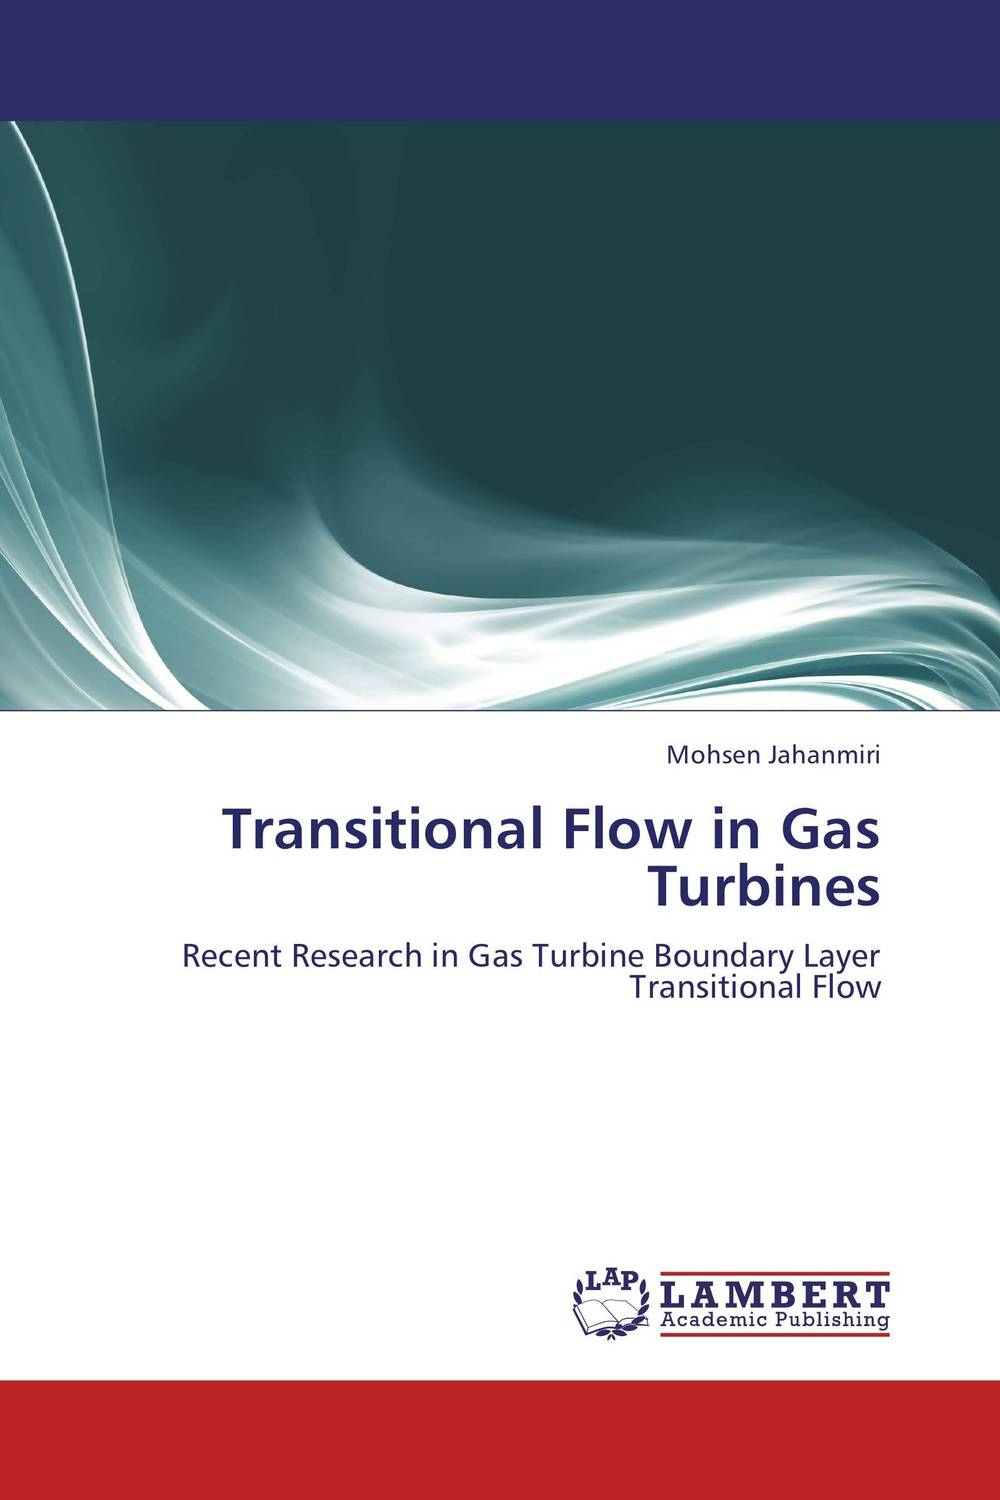 Transitional Flow in Gas Turbines manuscript found in accra